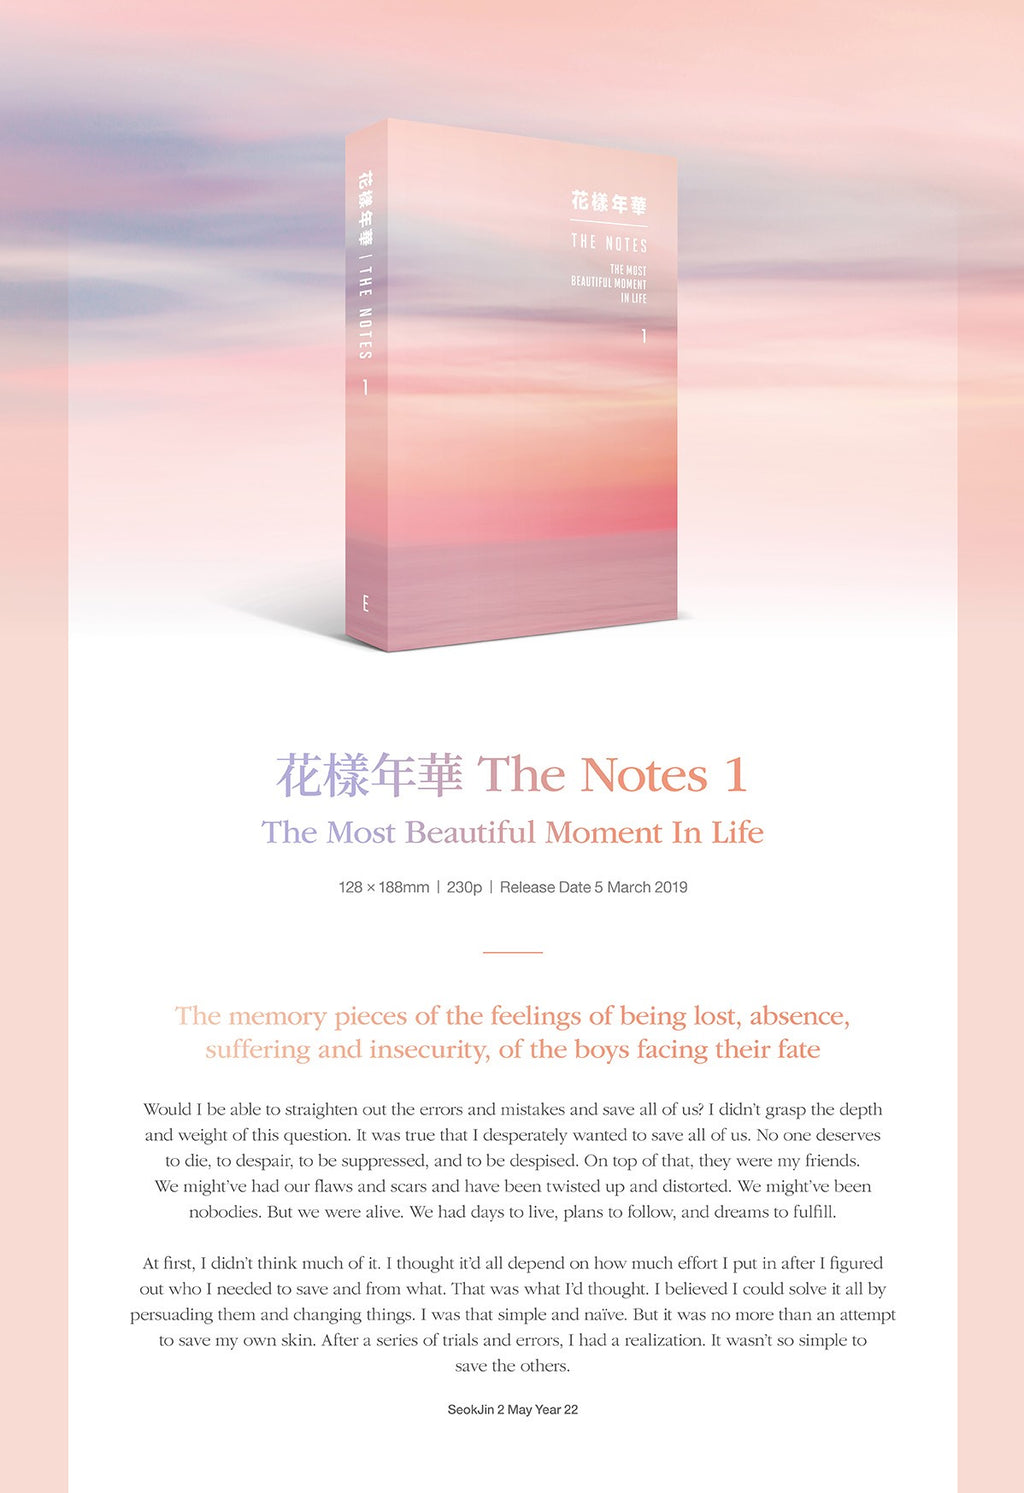 BTS - The Notes (1) - The Most Beautiful Moment in Life (English Version) - Jetzt lieferbar